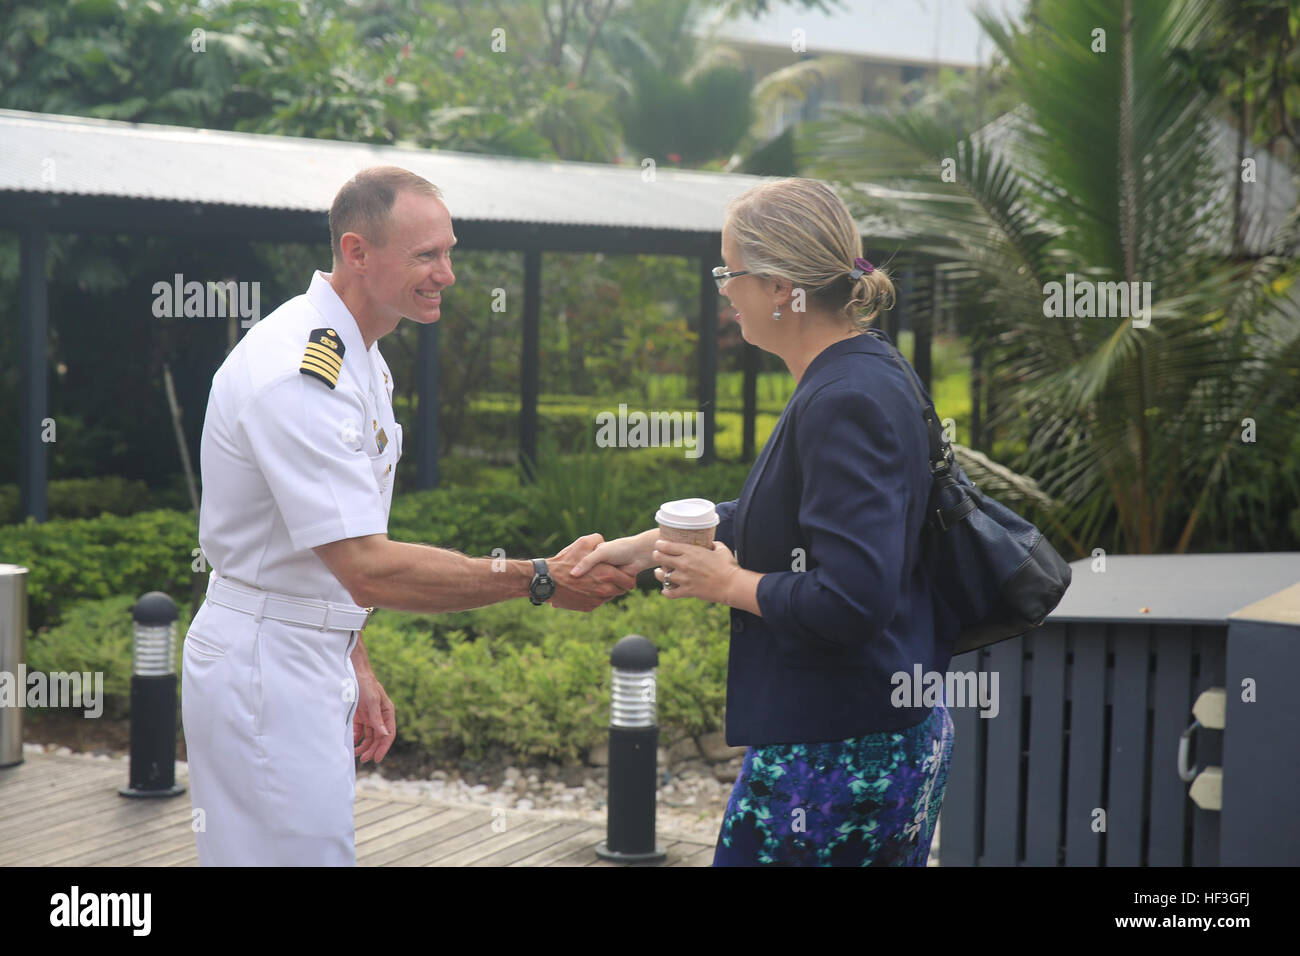 150713-M-GO800-005 HONIARA, Guadalcanal (July 13, 2015) – Commodore, Task Force Forager Capt. James Meyer greets - Stock Image